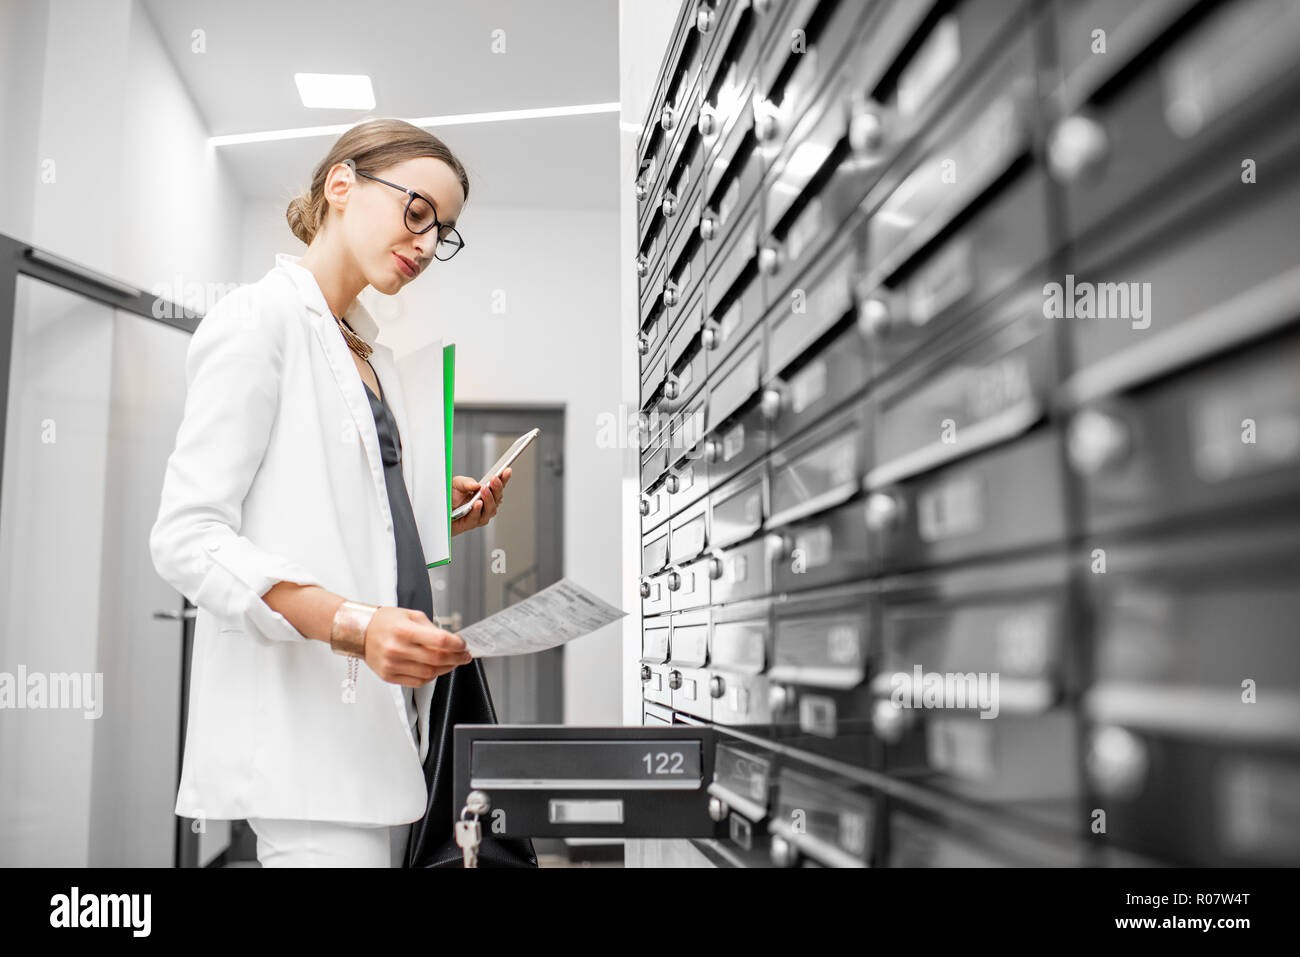 Dispirited woman checking bills getting correspondence from the mailboxes in the walk hall of the residential building - Stock Image